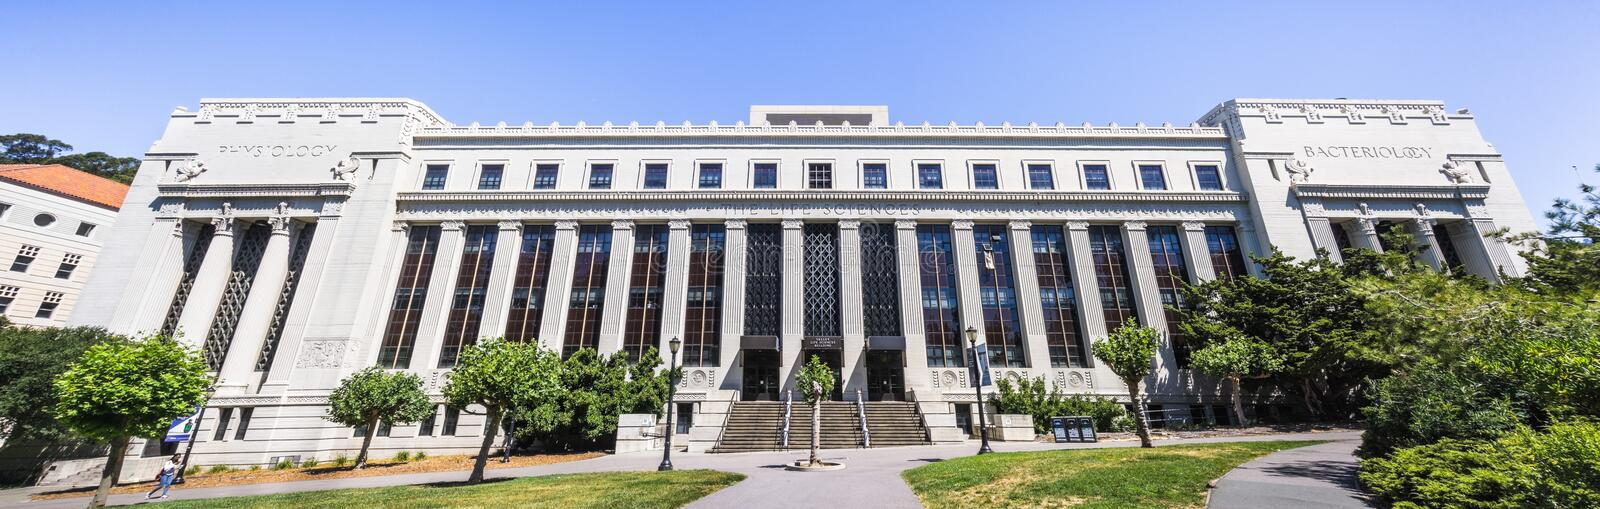 July 13, 2019 Berkeley / CA / USA - The Valley Life Sciences Building at UC Berkeley, the largest building on campus; the Museum. Of Paleontology UCMP is also stock photography